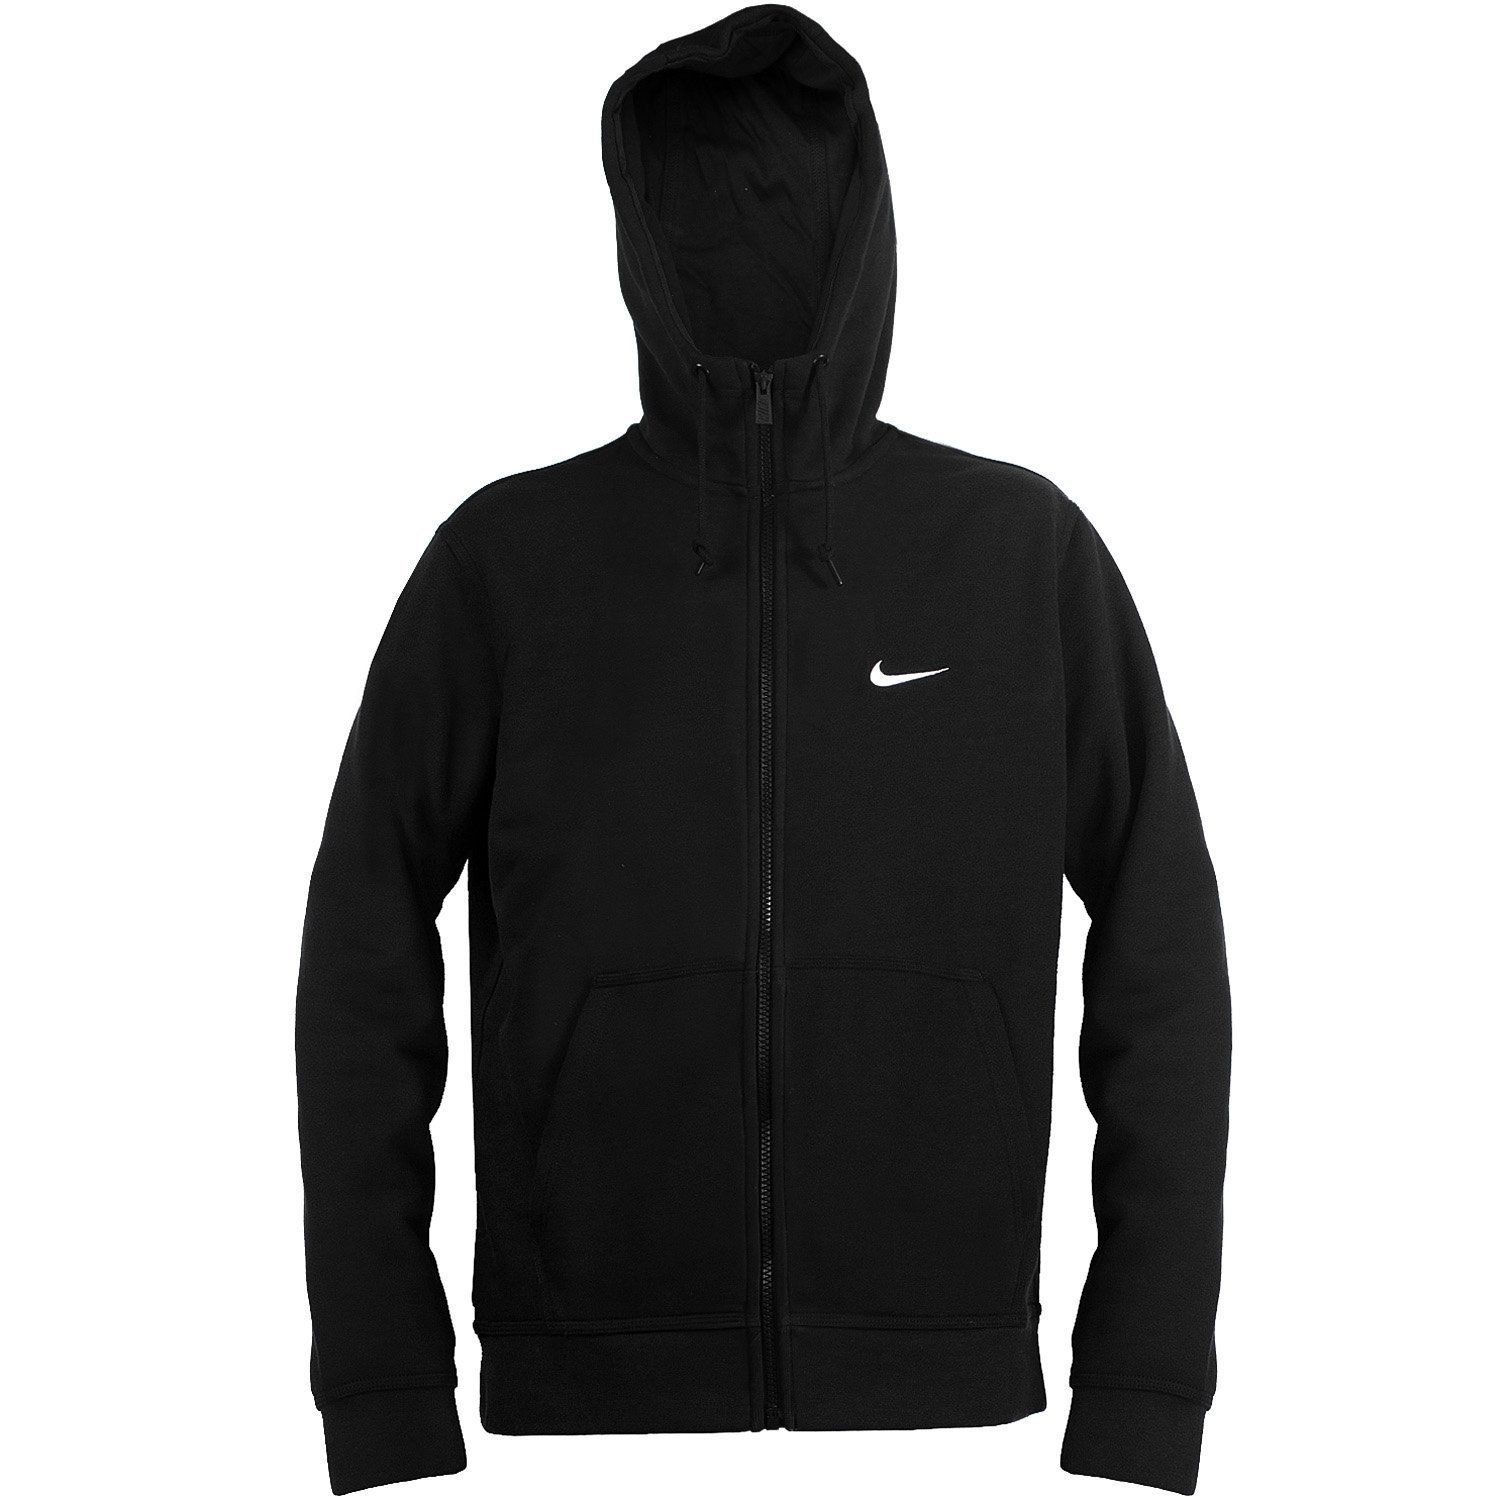 16a2c89ed Galleon - Nike Men's Club Swoosh Full-Zip Hoodie, Black, Medium